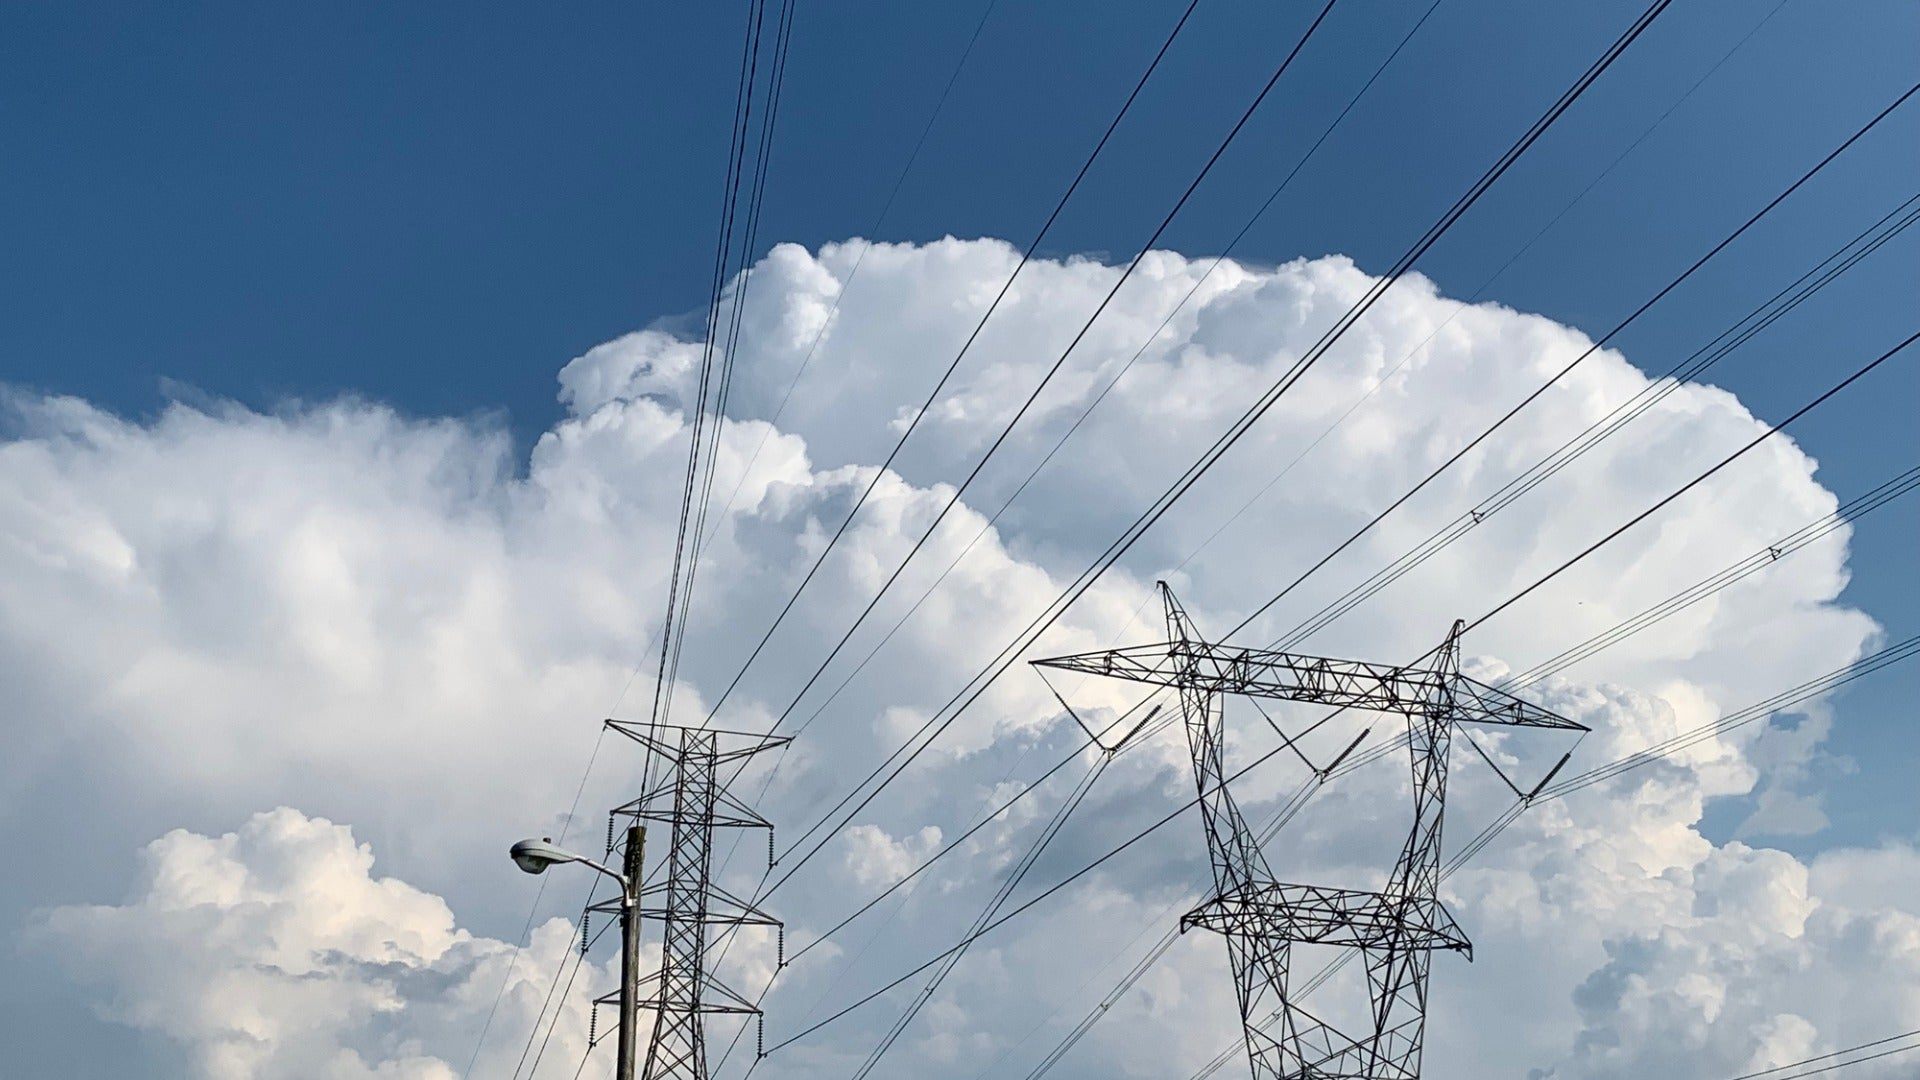 Mexican Wholesale Electricity Market (MEM): Electricity producers send bids to the National Center for Energy Control (CENACE) that indicate the amount of energy they are offering at a specific price.